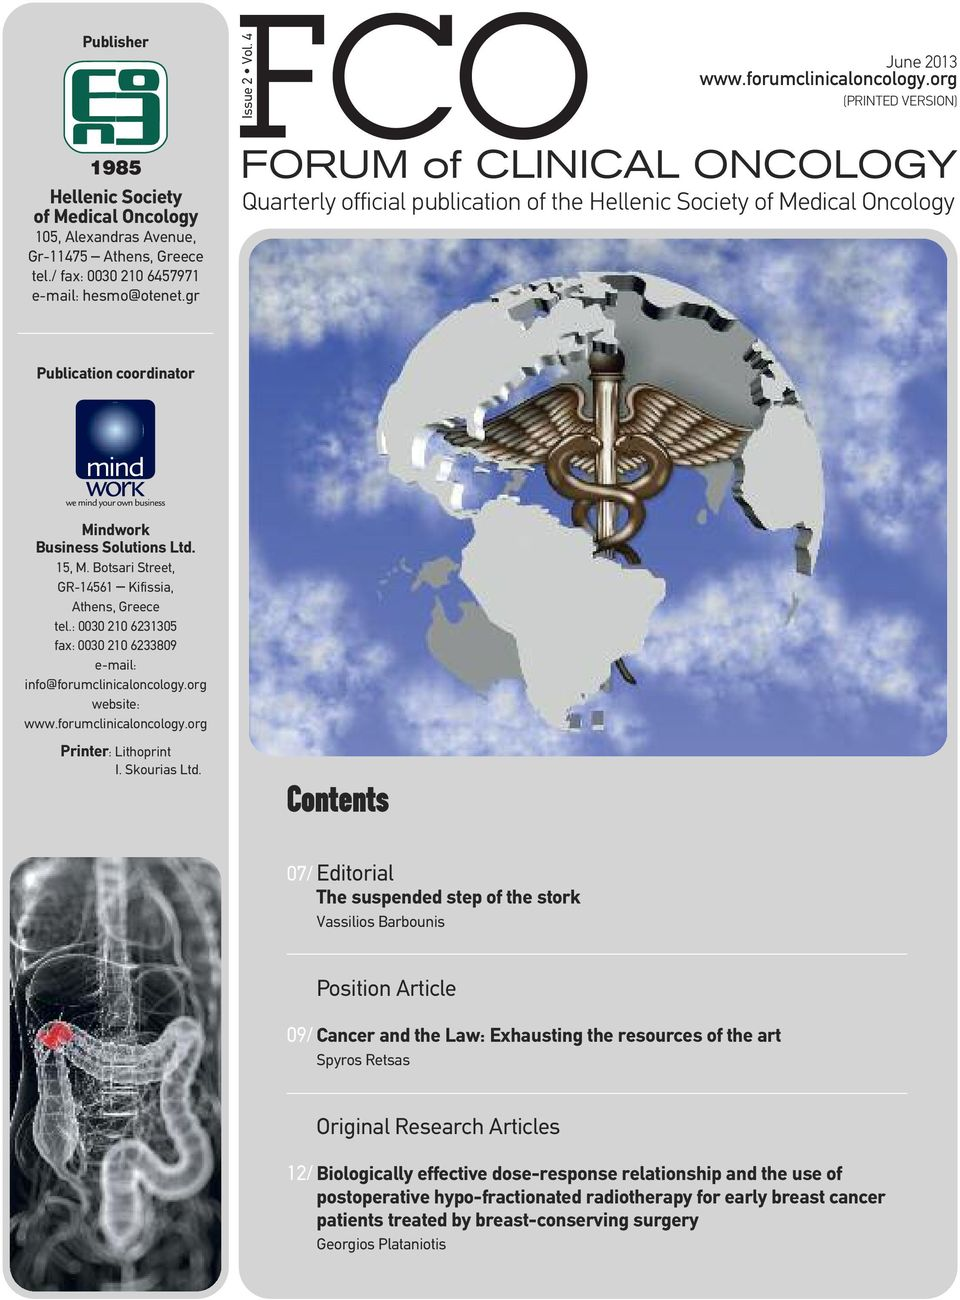 gr FORUM of CLINICAL ONCOLOGY Quarterly official publication of the Hellenic Society of Medical Oncology Publication coordinator Mindwork Business Solutions Ltd. 15, M.